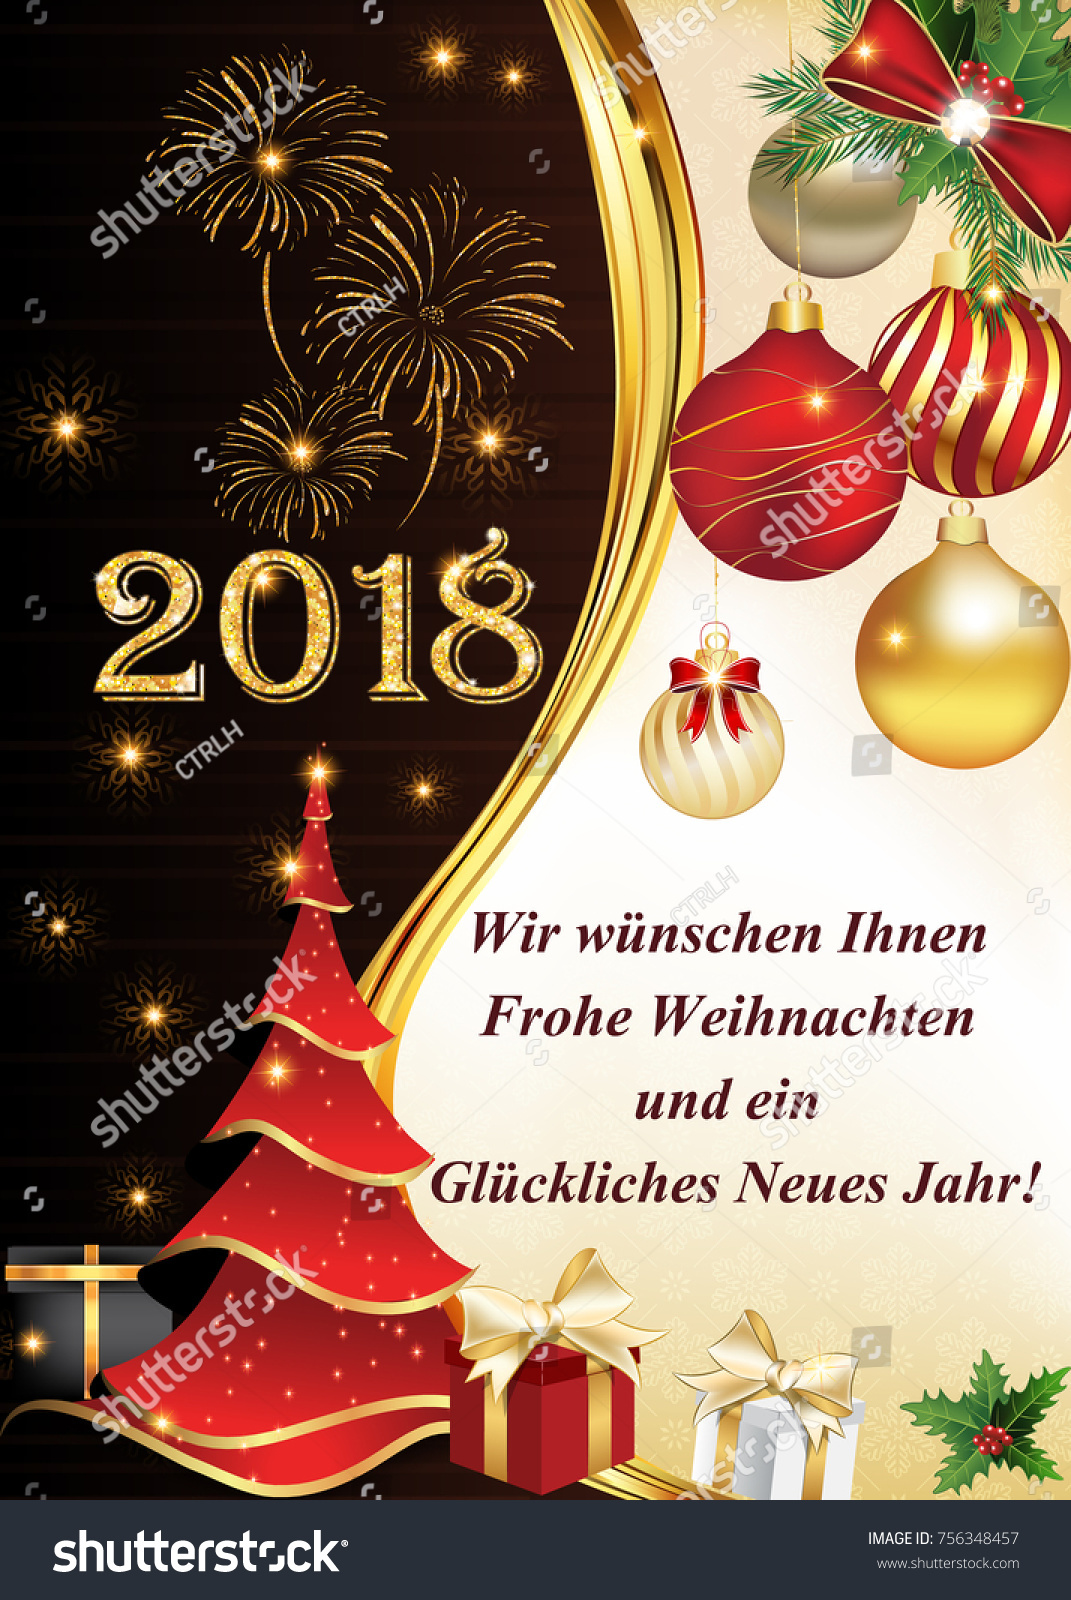 2018 Merry Christmas Happy New Year Stock Illustration 756348457